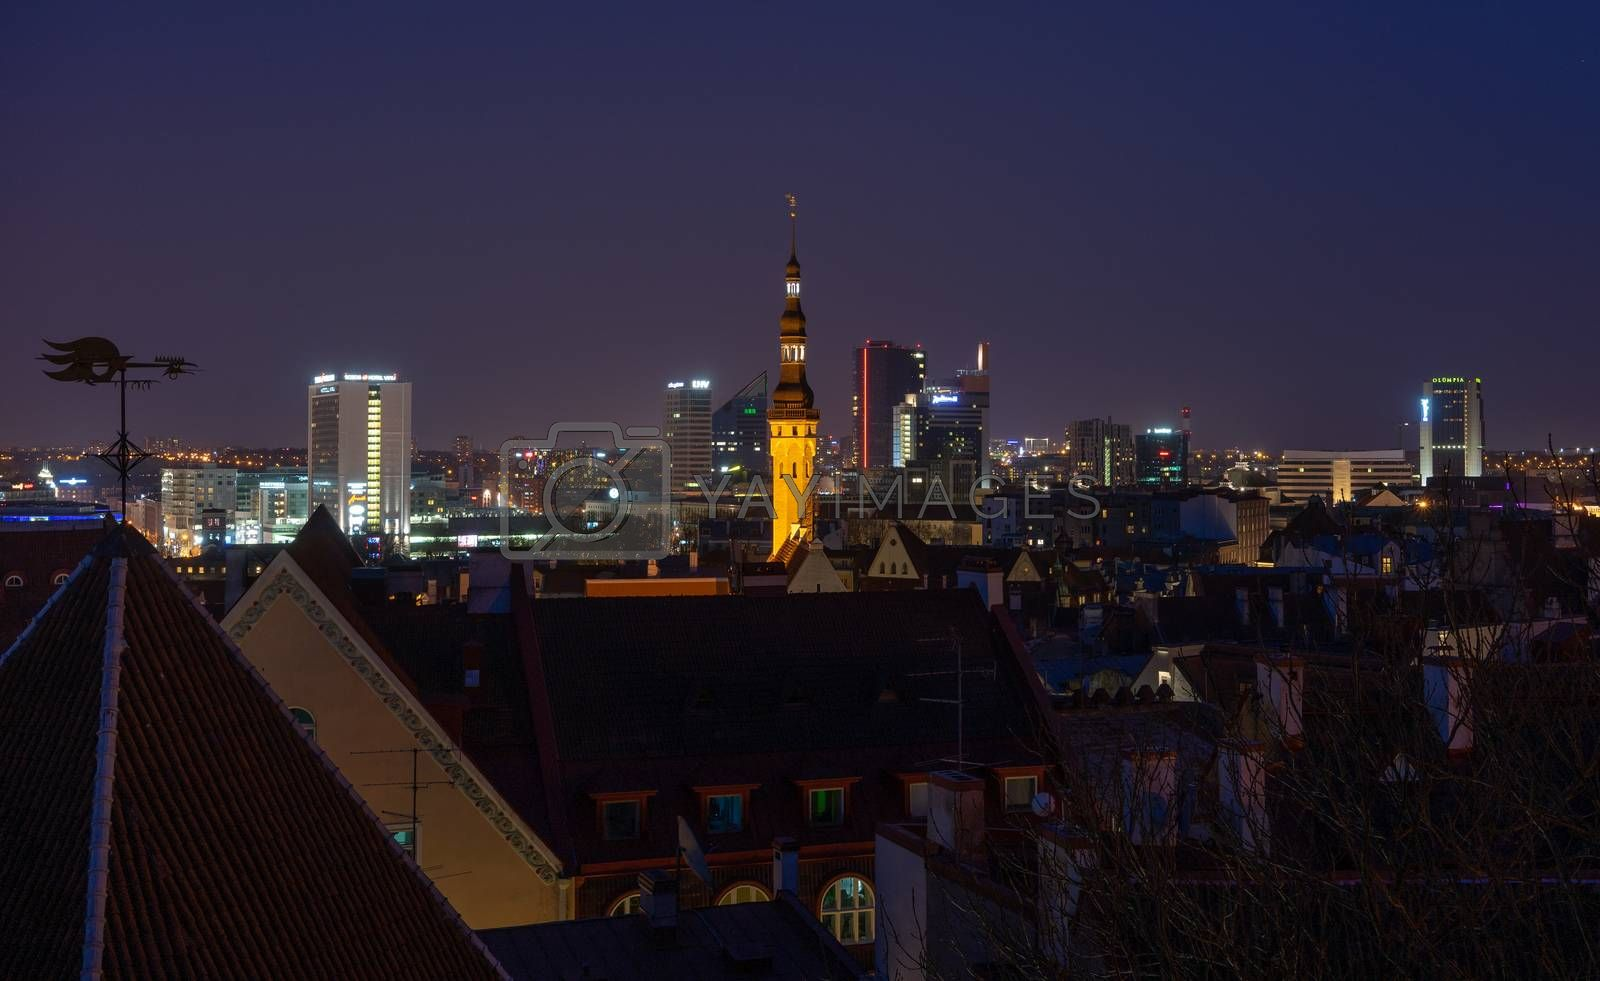 21 April 2018 Tallinn, Estonia. View of the Old town from the observation deck at night